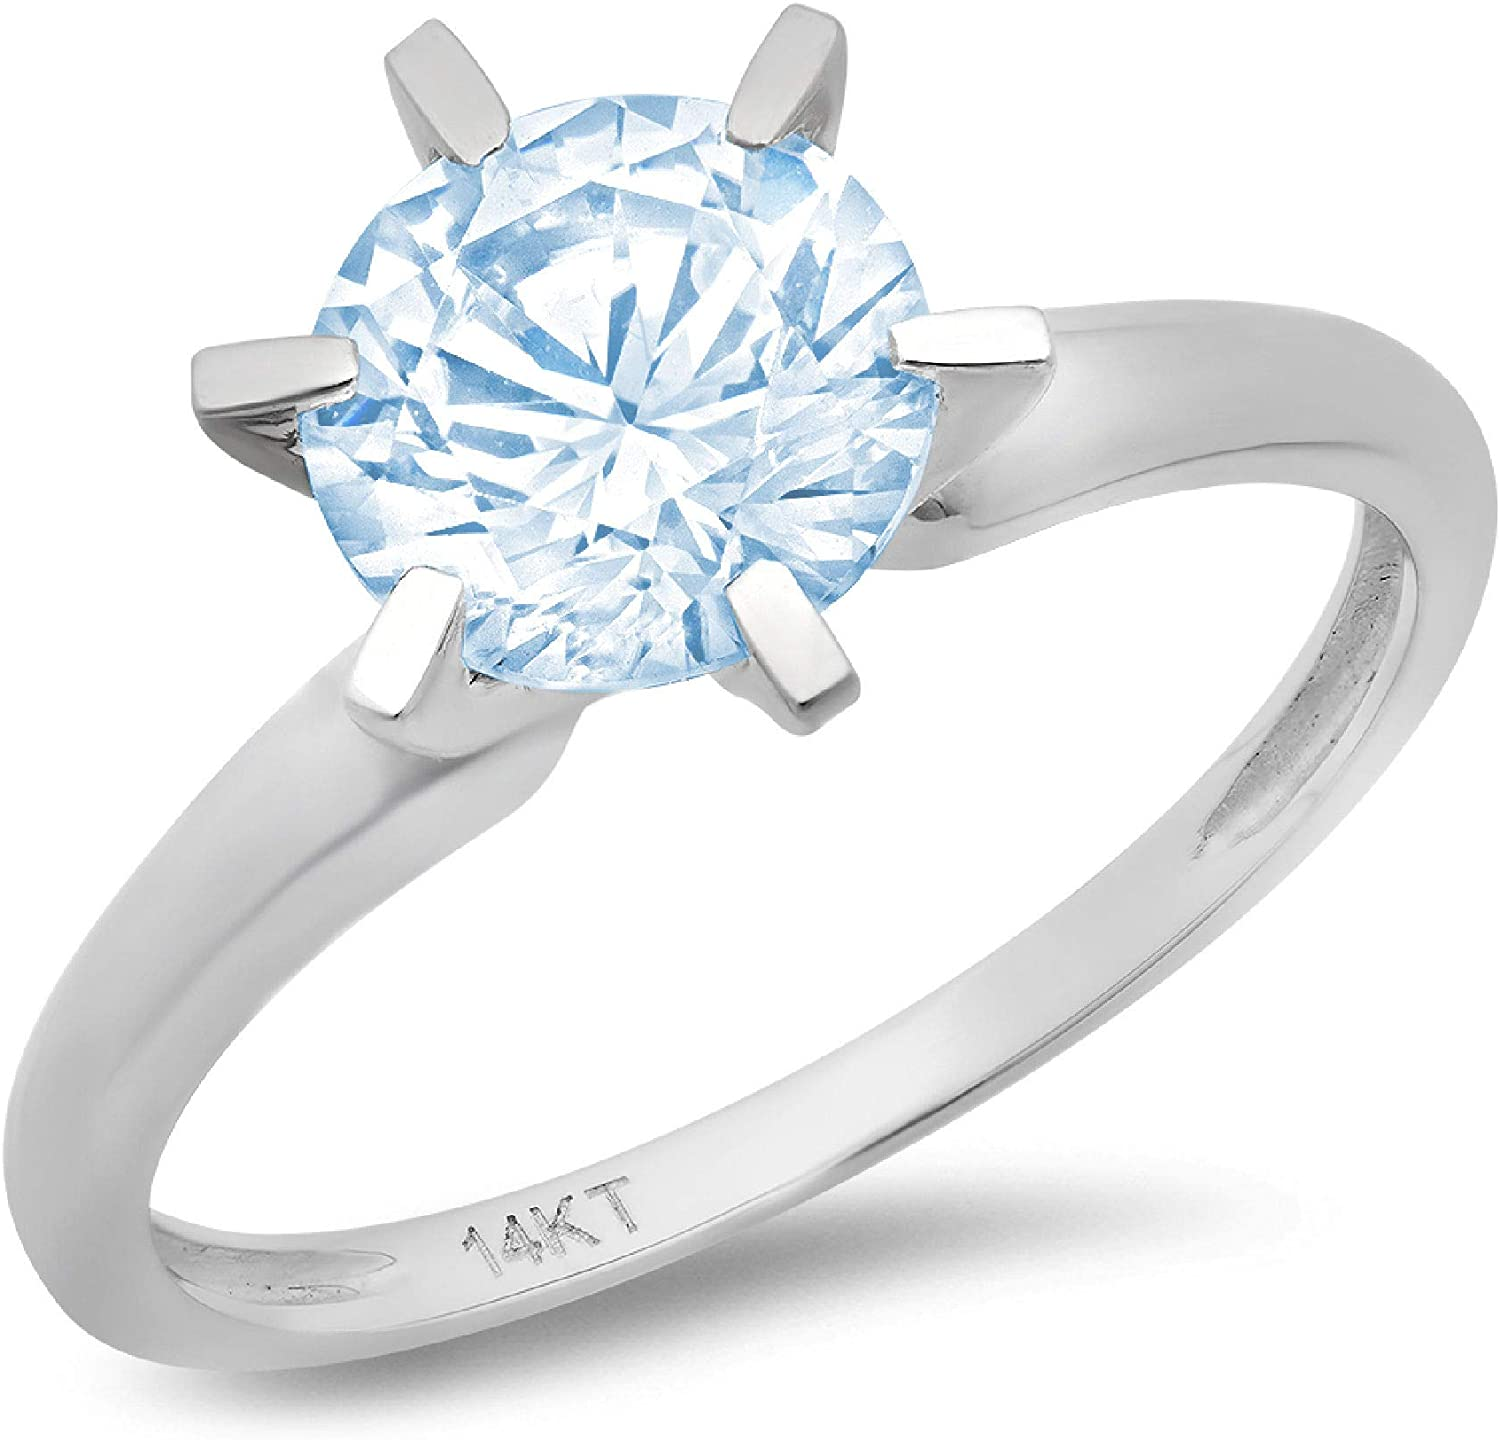 2.9ct Round Cut Solitaire Natural Swiss Blue Topaz Excellent VVS1 6-prong Engagement Wedding Bridal Promise Anniversary Ring Solid 14k White Gold for Women